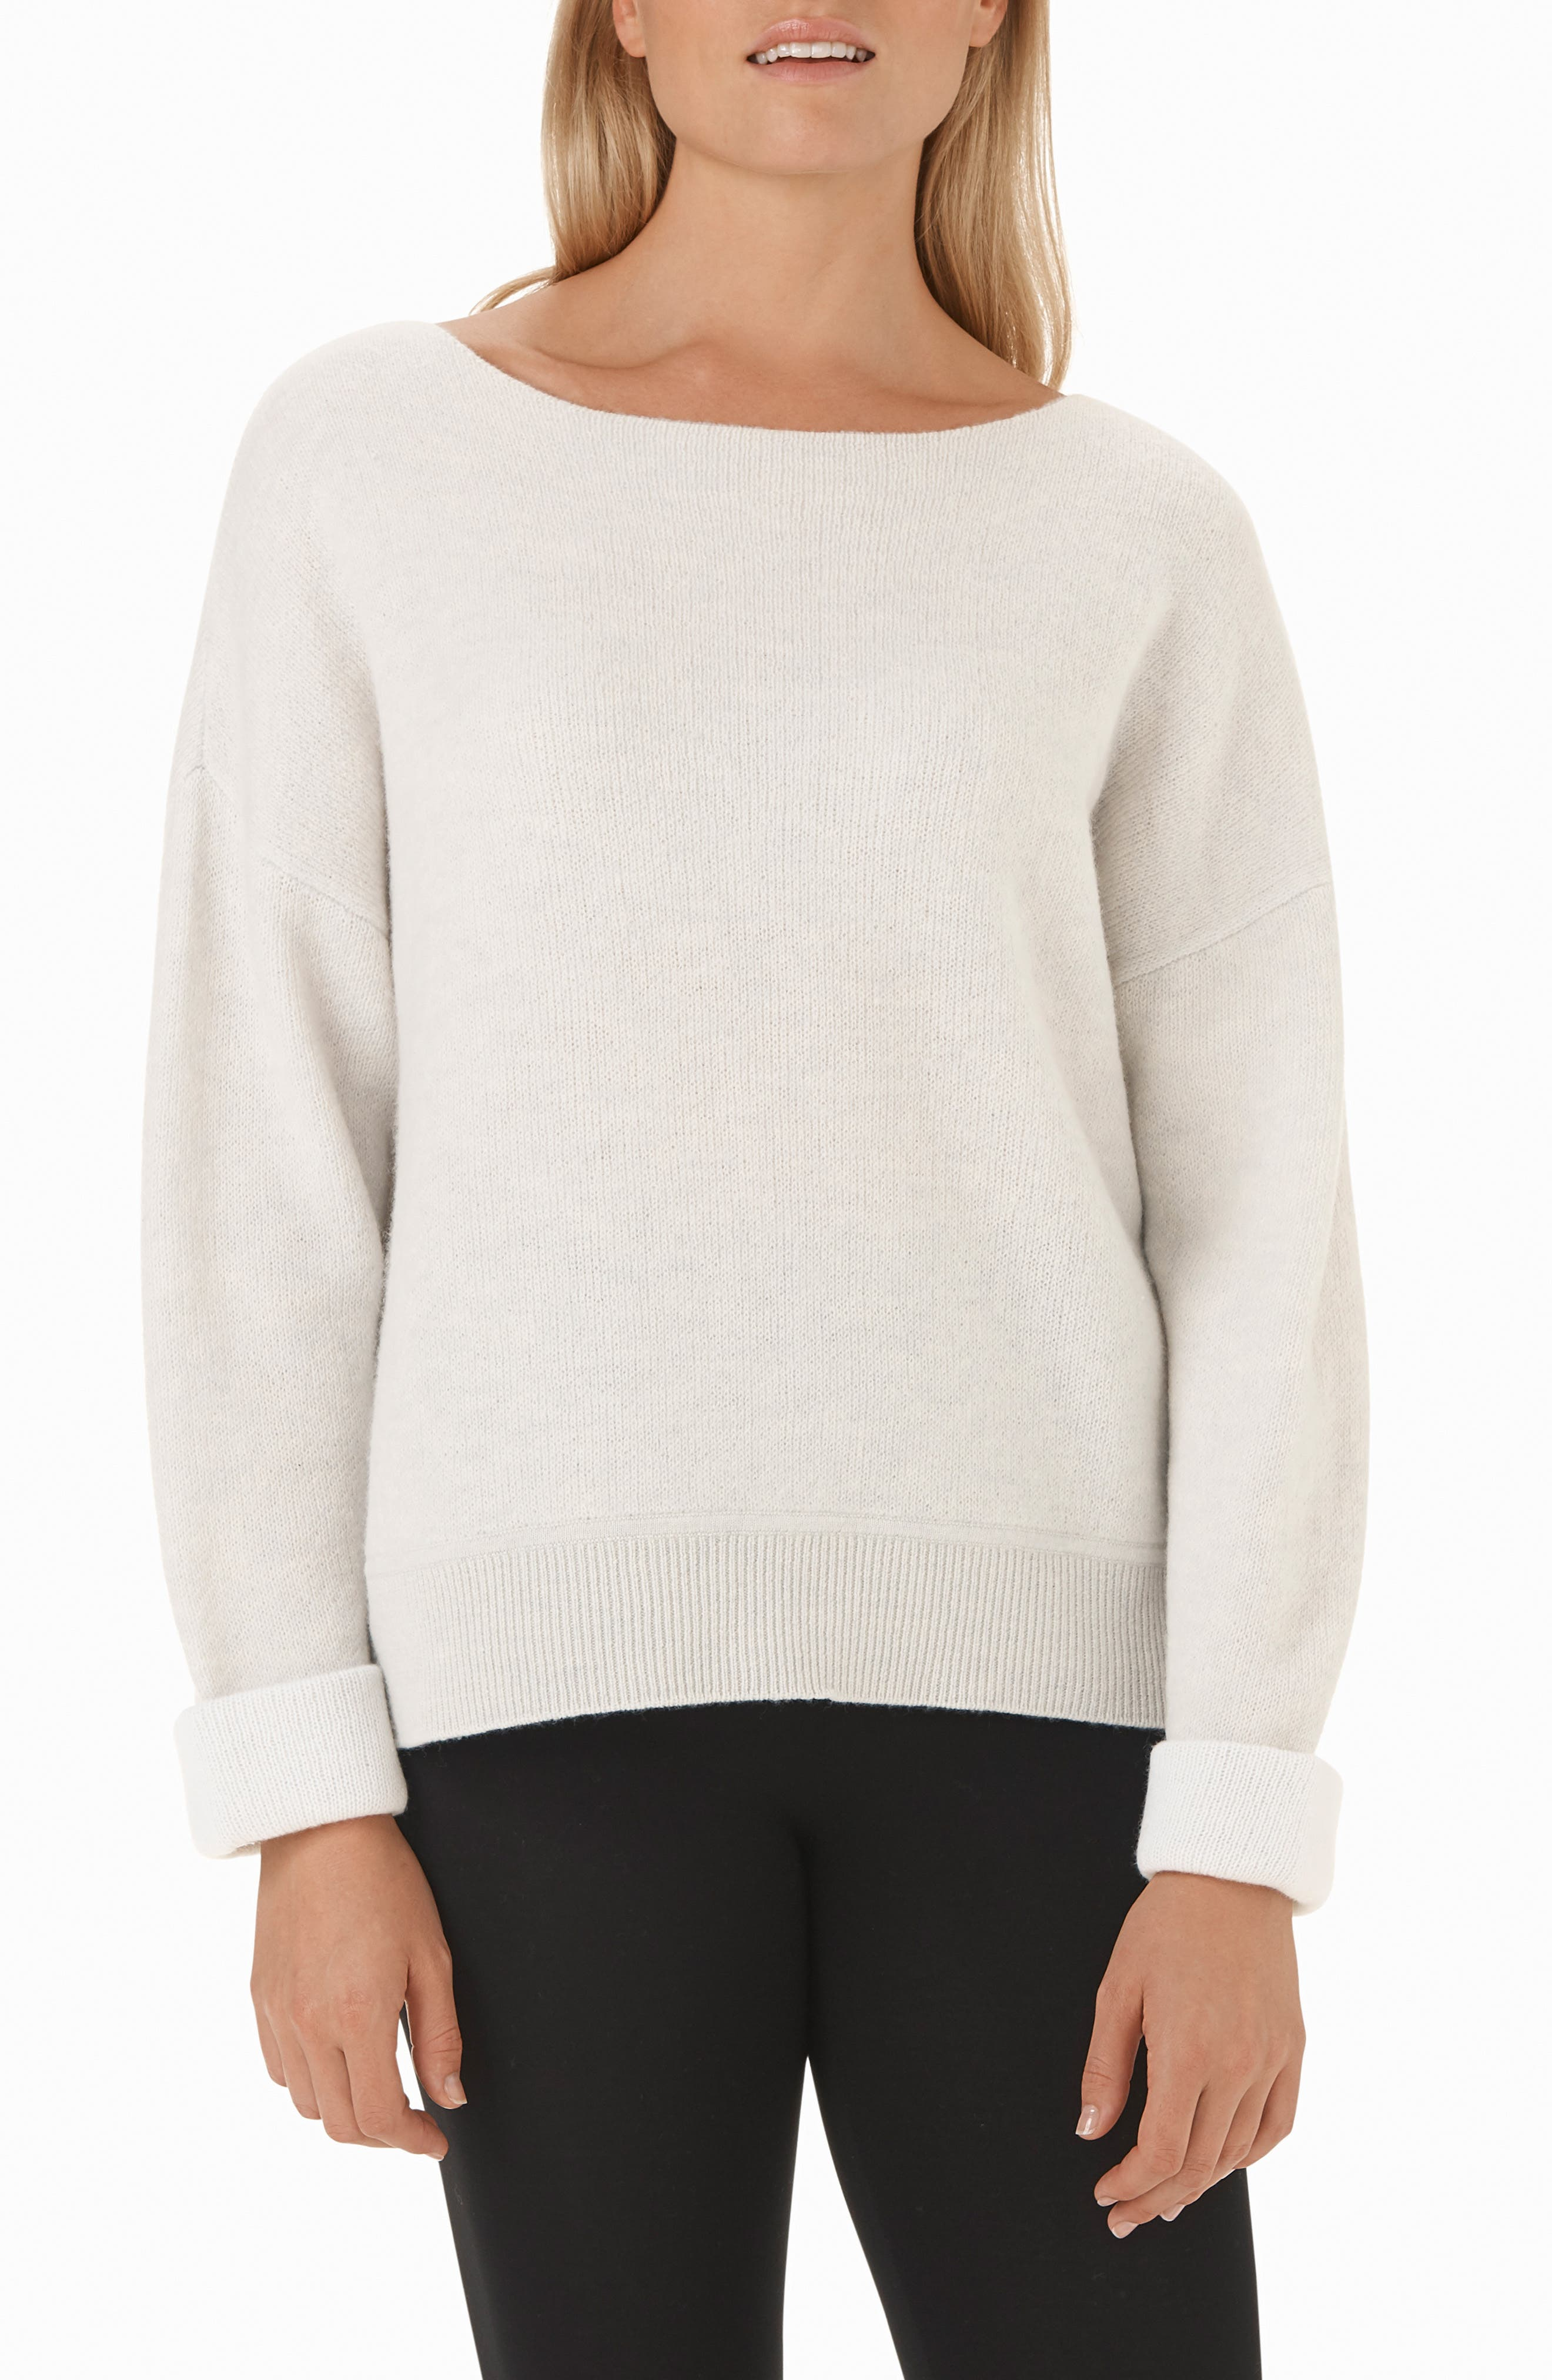 The White Company Wool & Cashmere Pullover Sweater